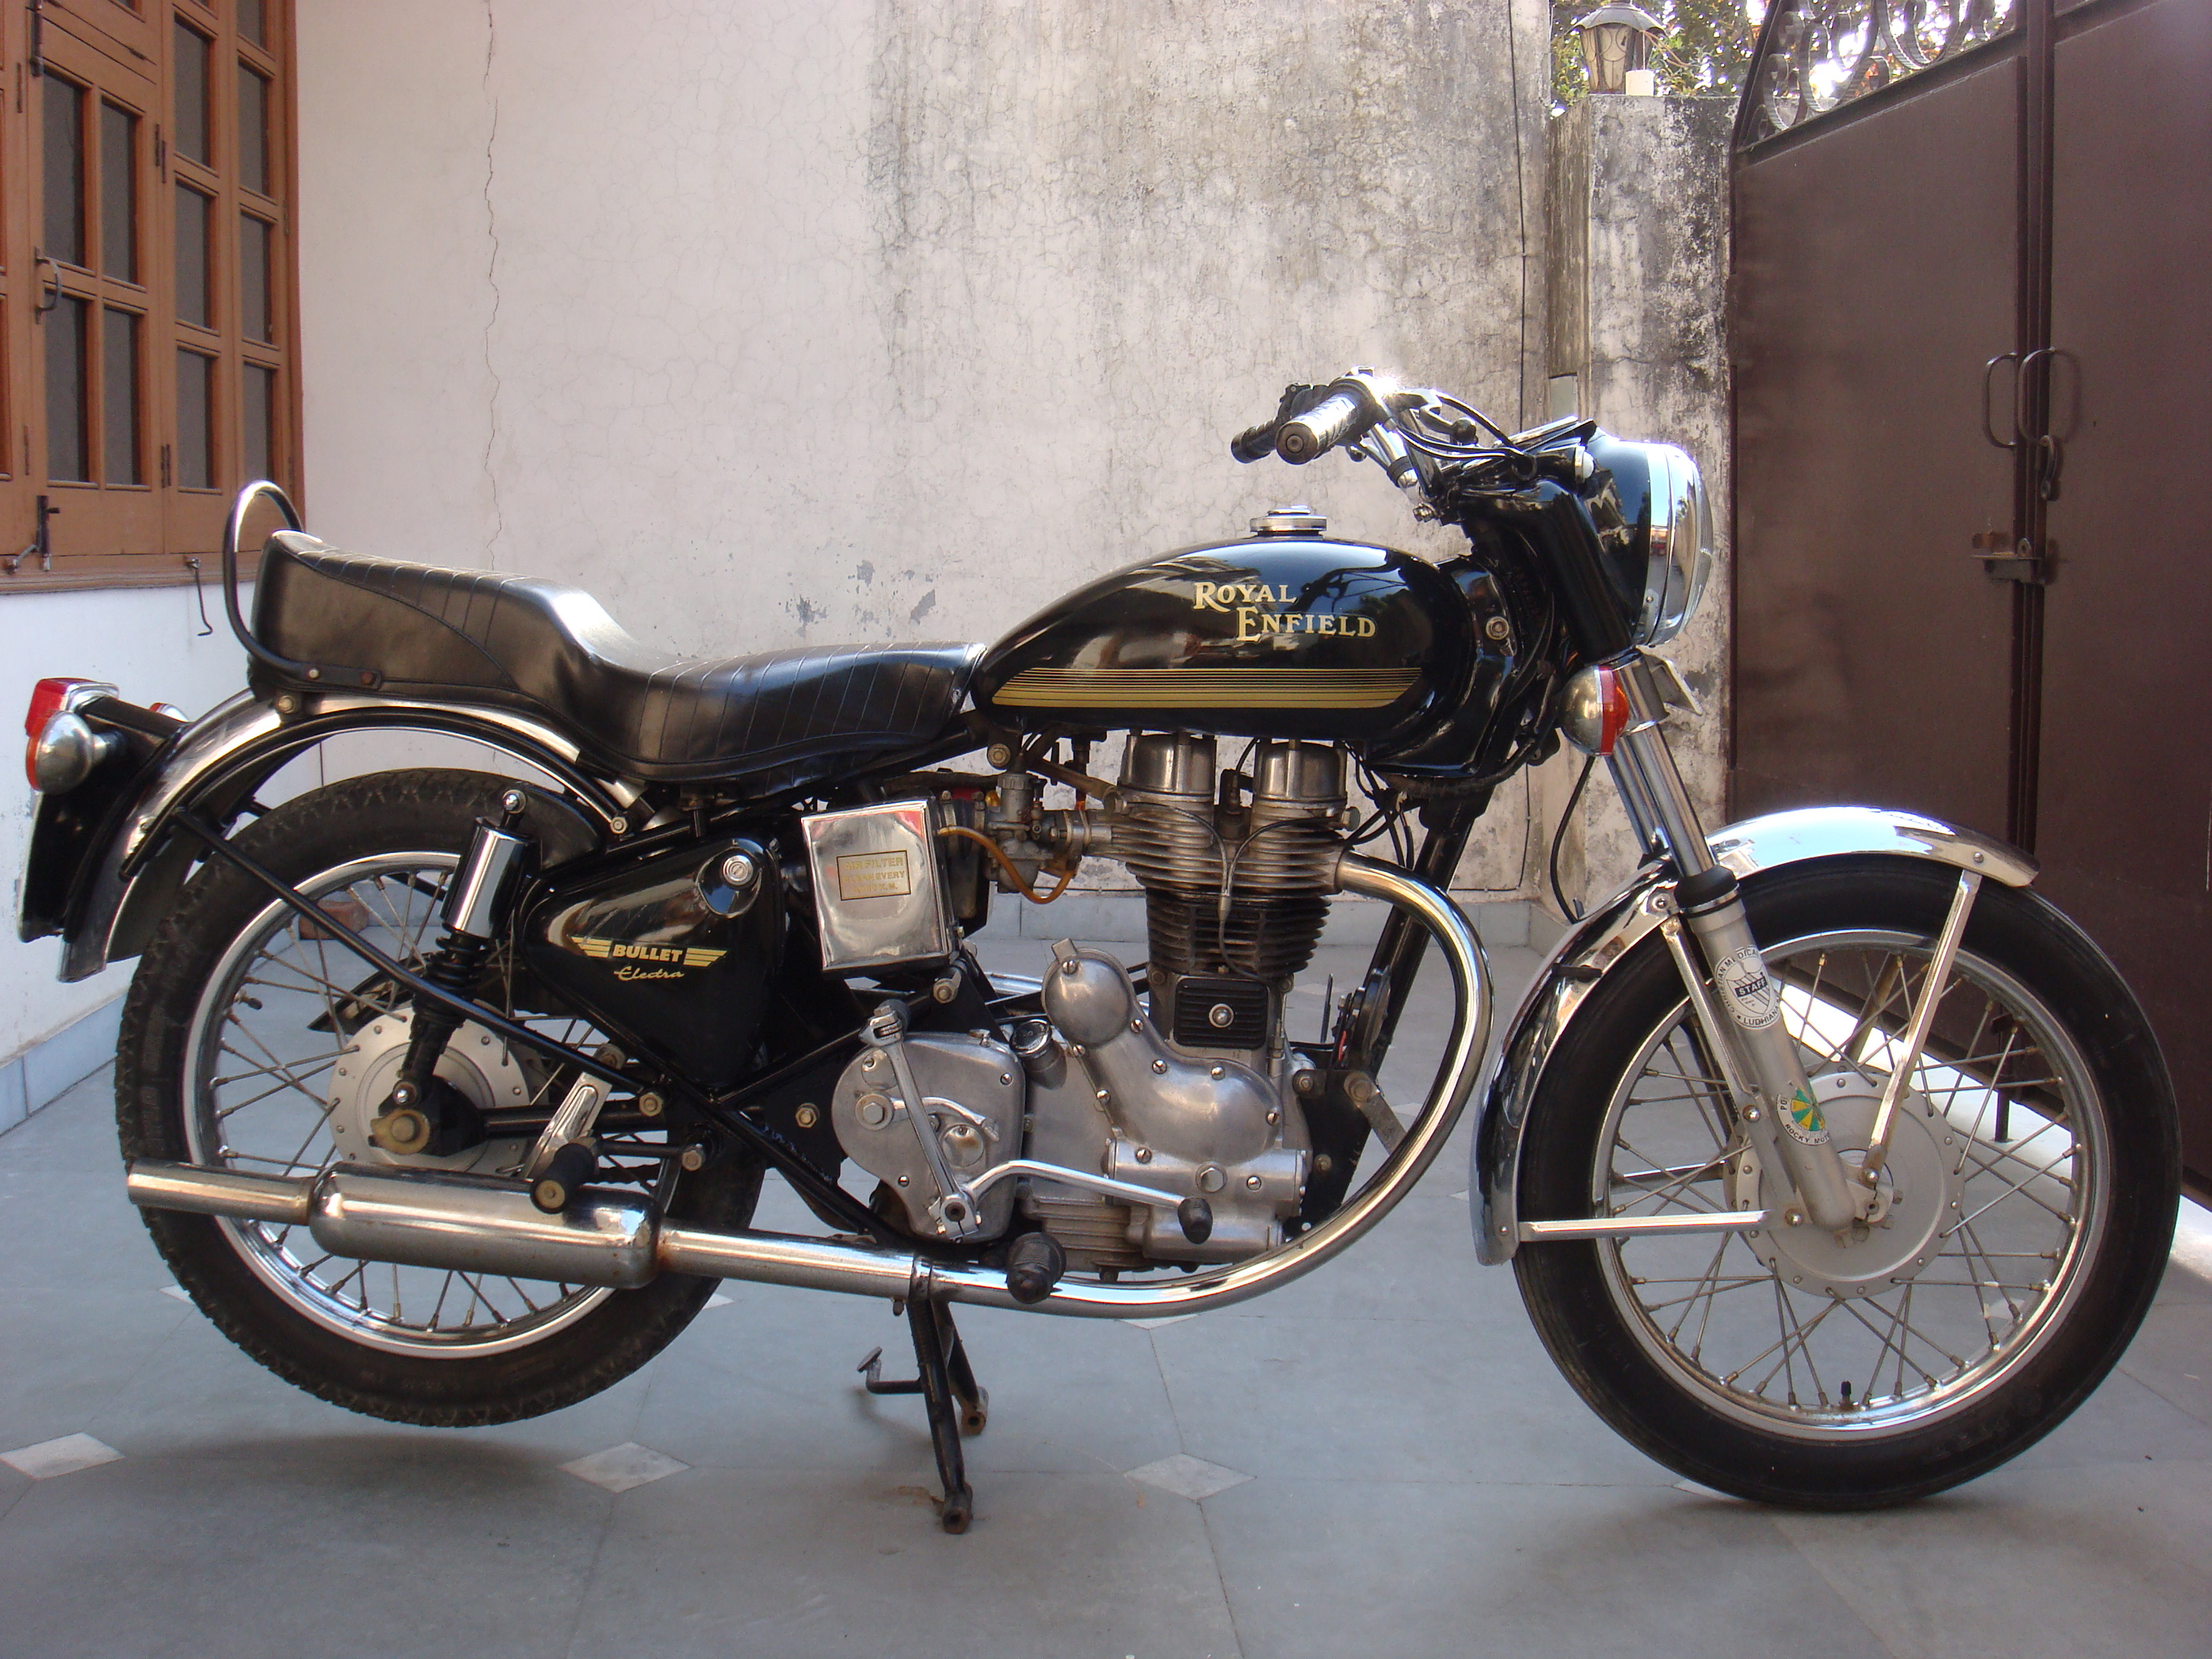 2003 Enfield 350 Bullet Classic #3